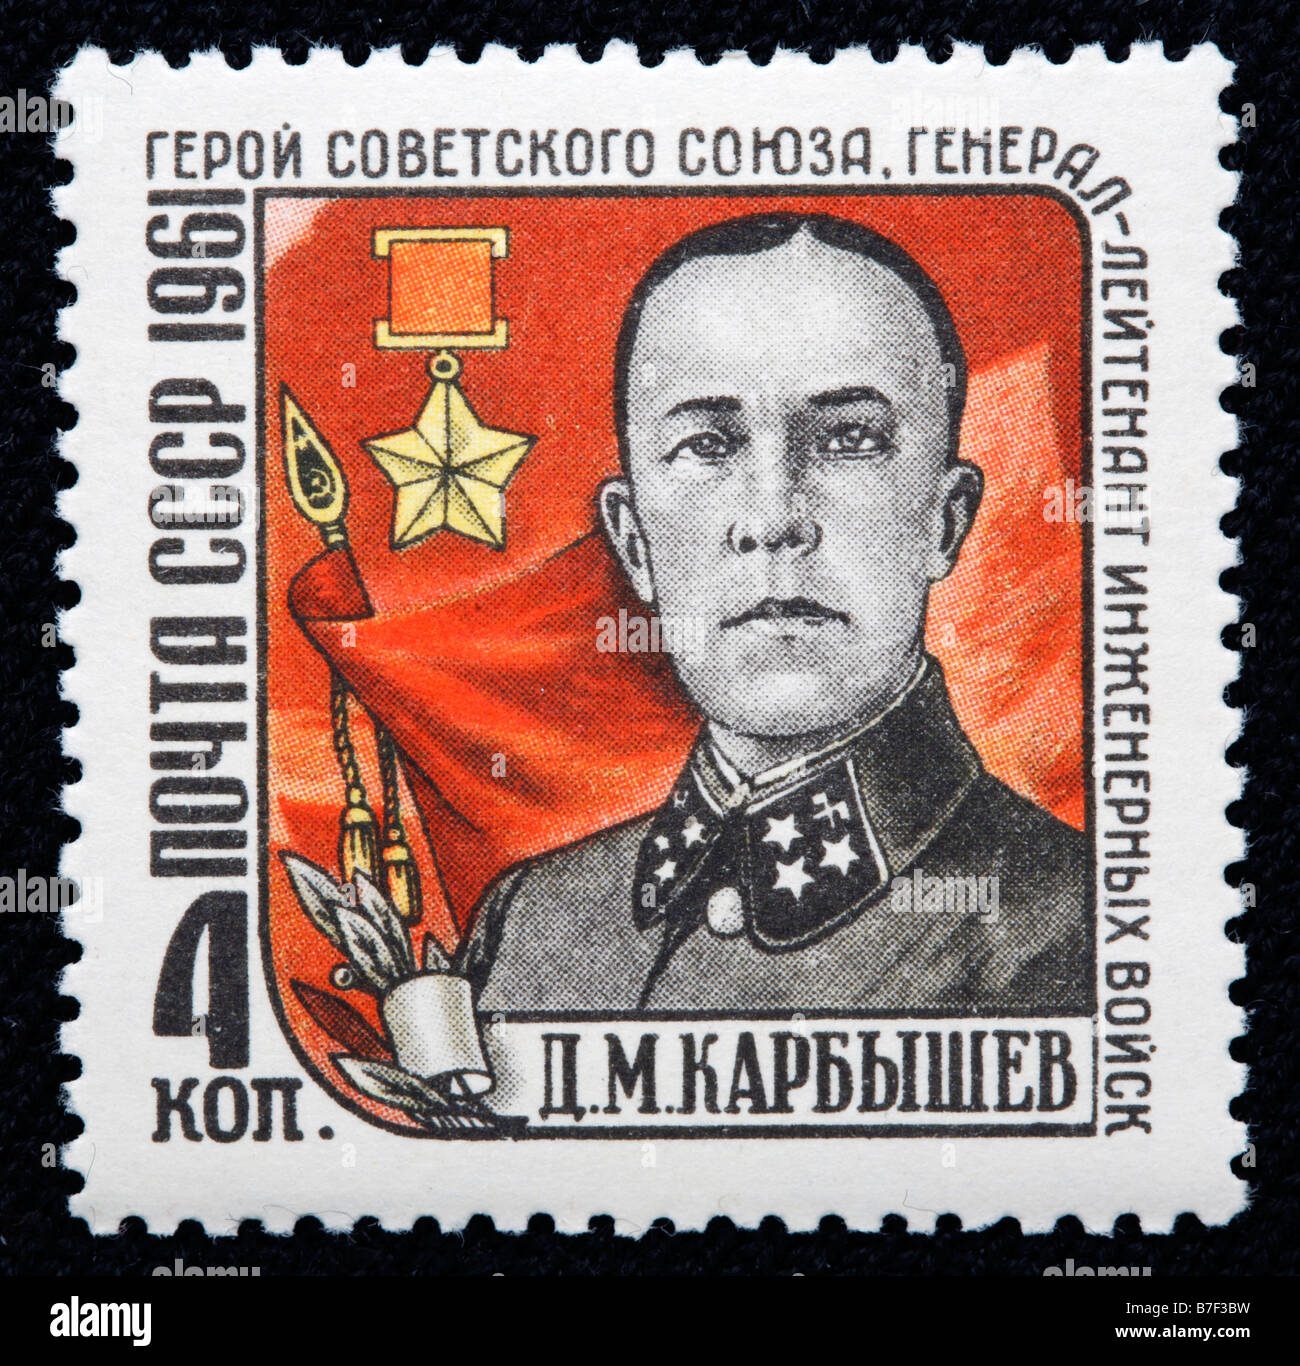 Dmitry Karbyshev (1880-1945), Red Army general, Hero of the Soviet Union, postage stamp, USSR, 1961 - Stock Image